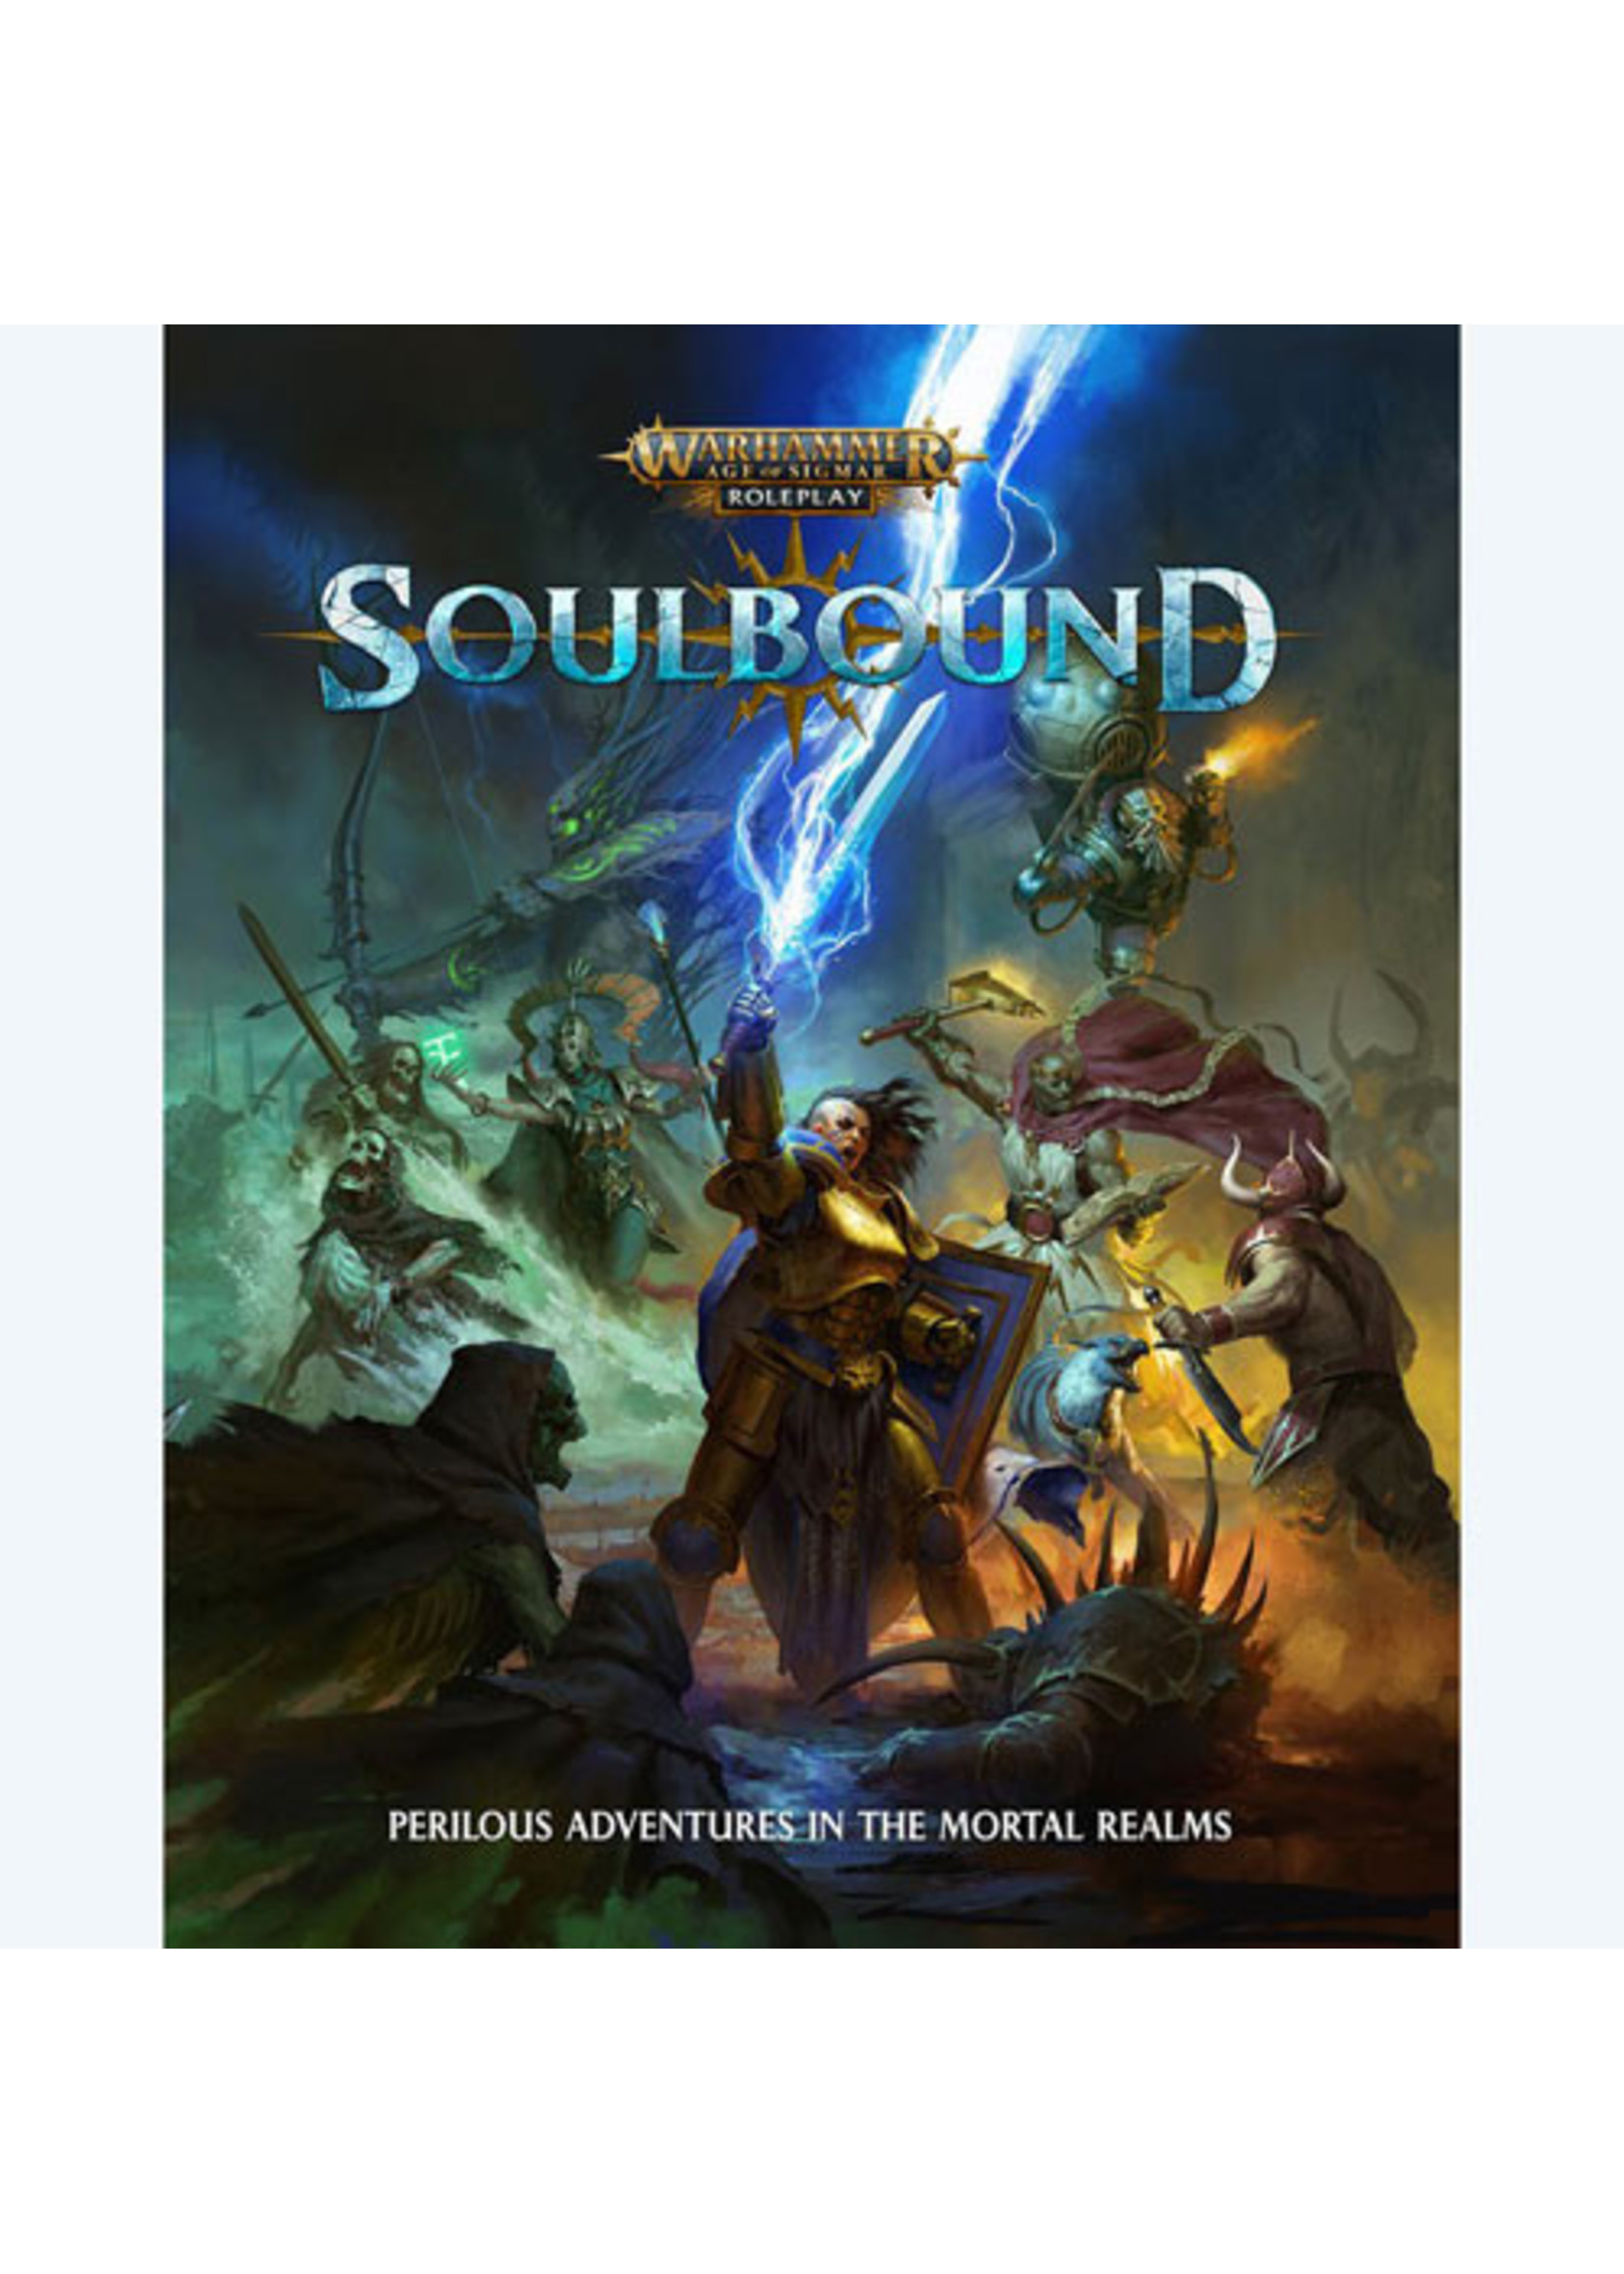 Warhammer Age of Sigmar Soulbound RPG: Core Rulebook